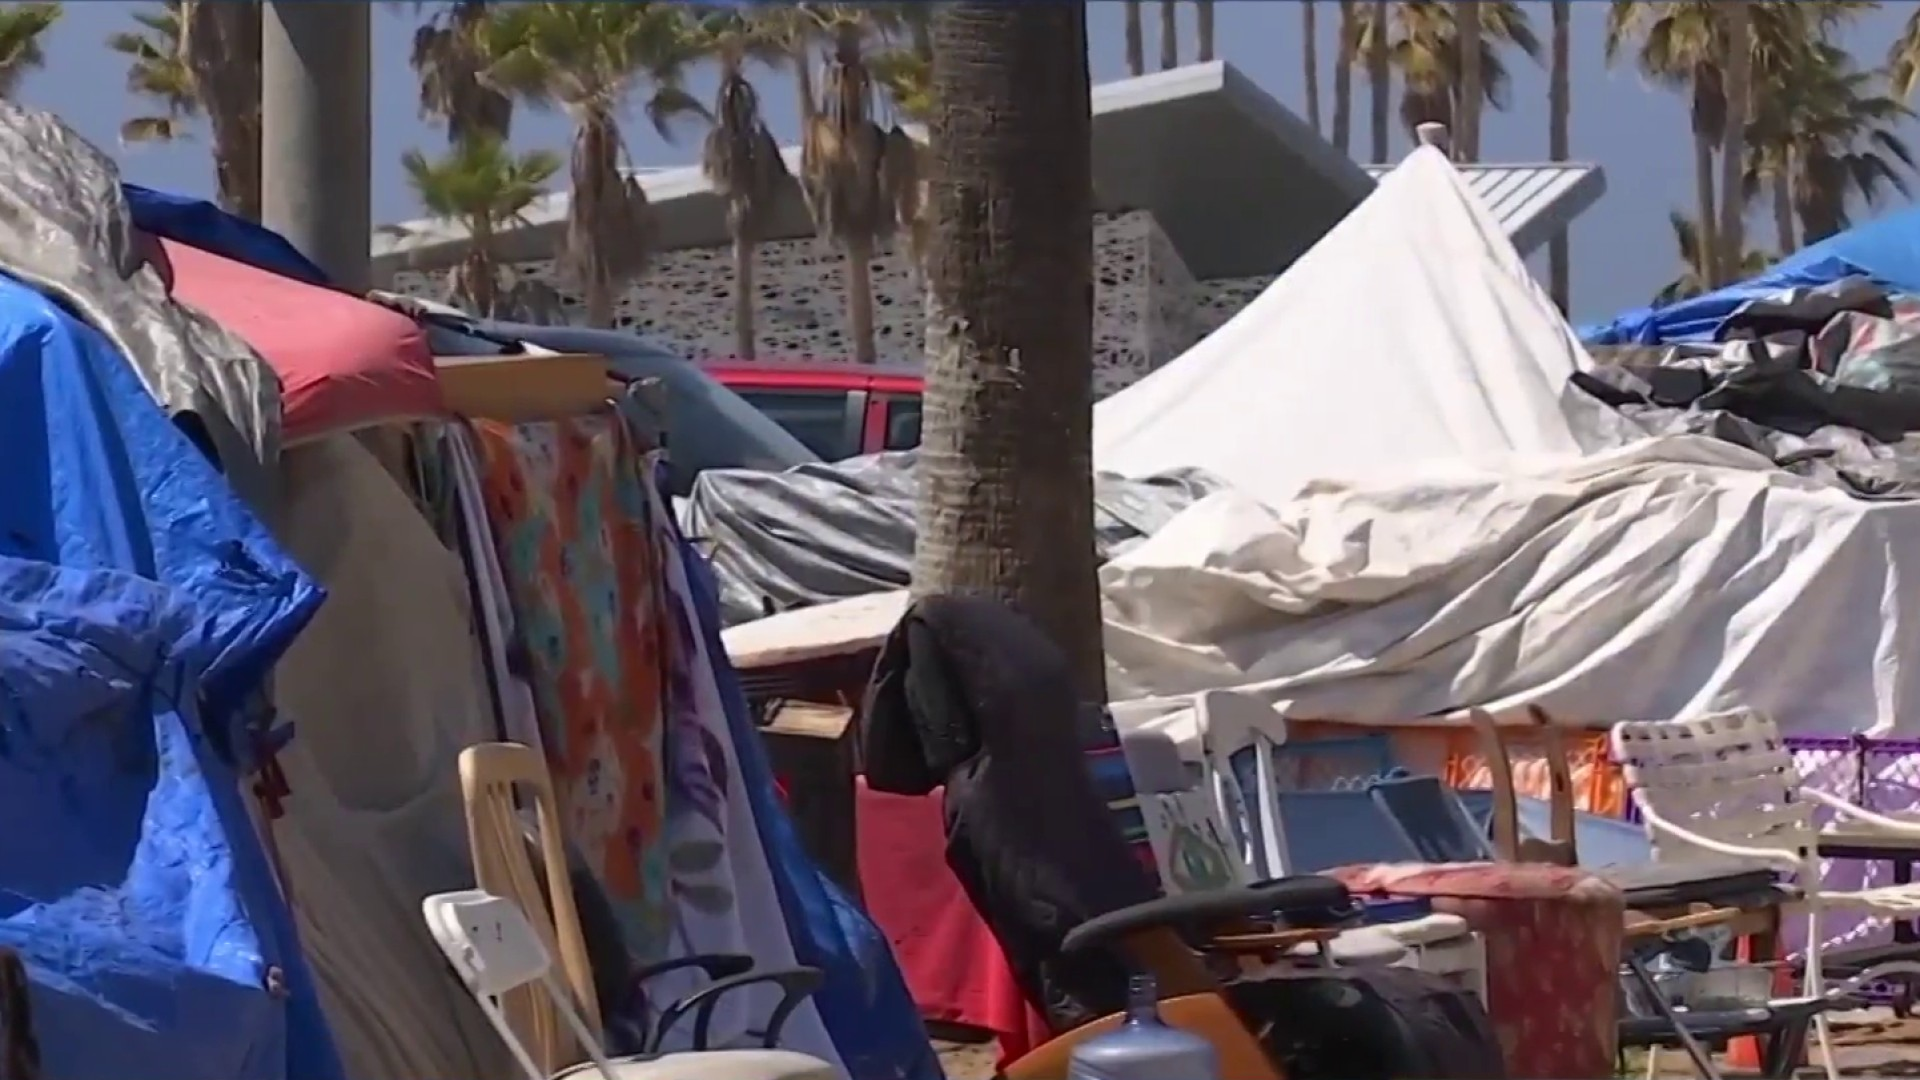 Residents demand LA Move Venice Beach Homeless Off the Streets 4/16/21